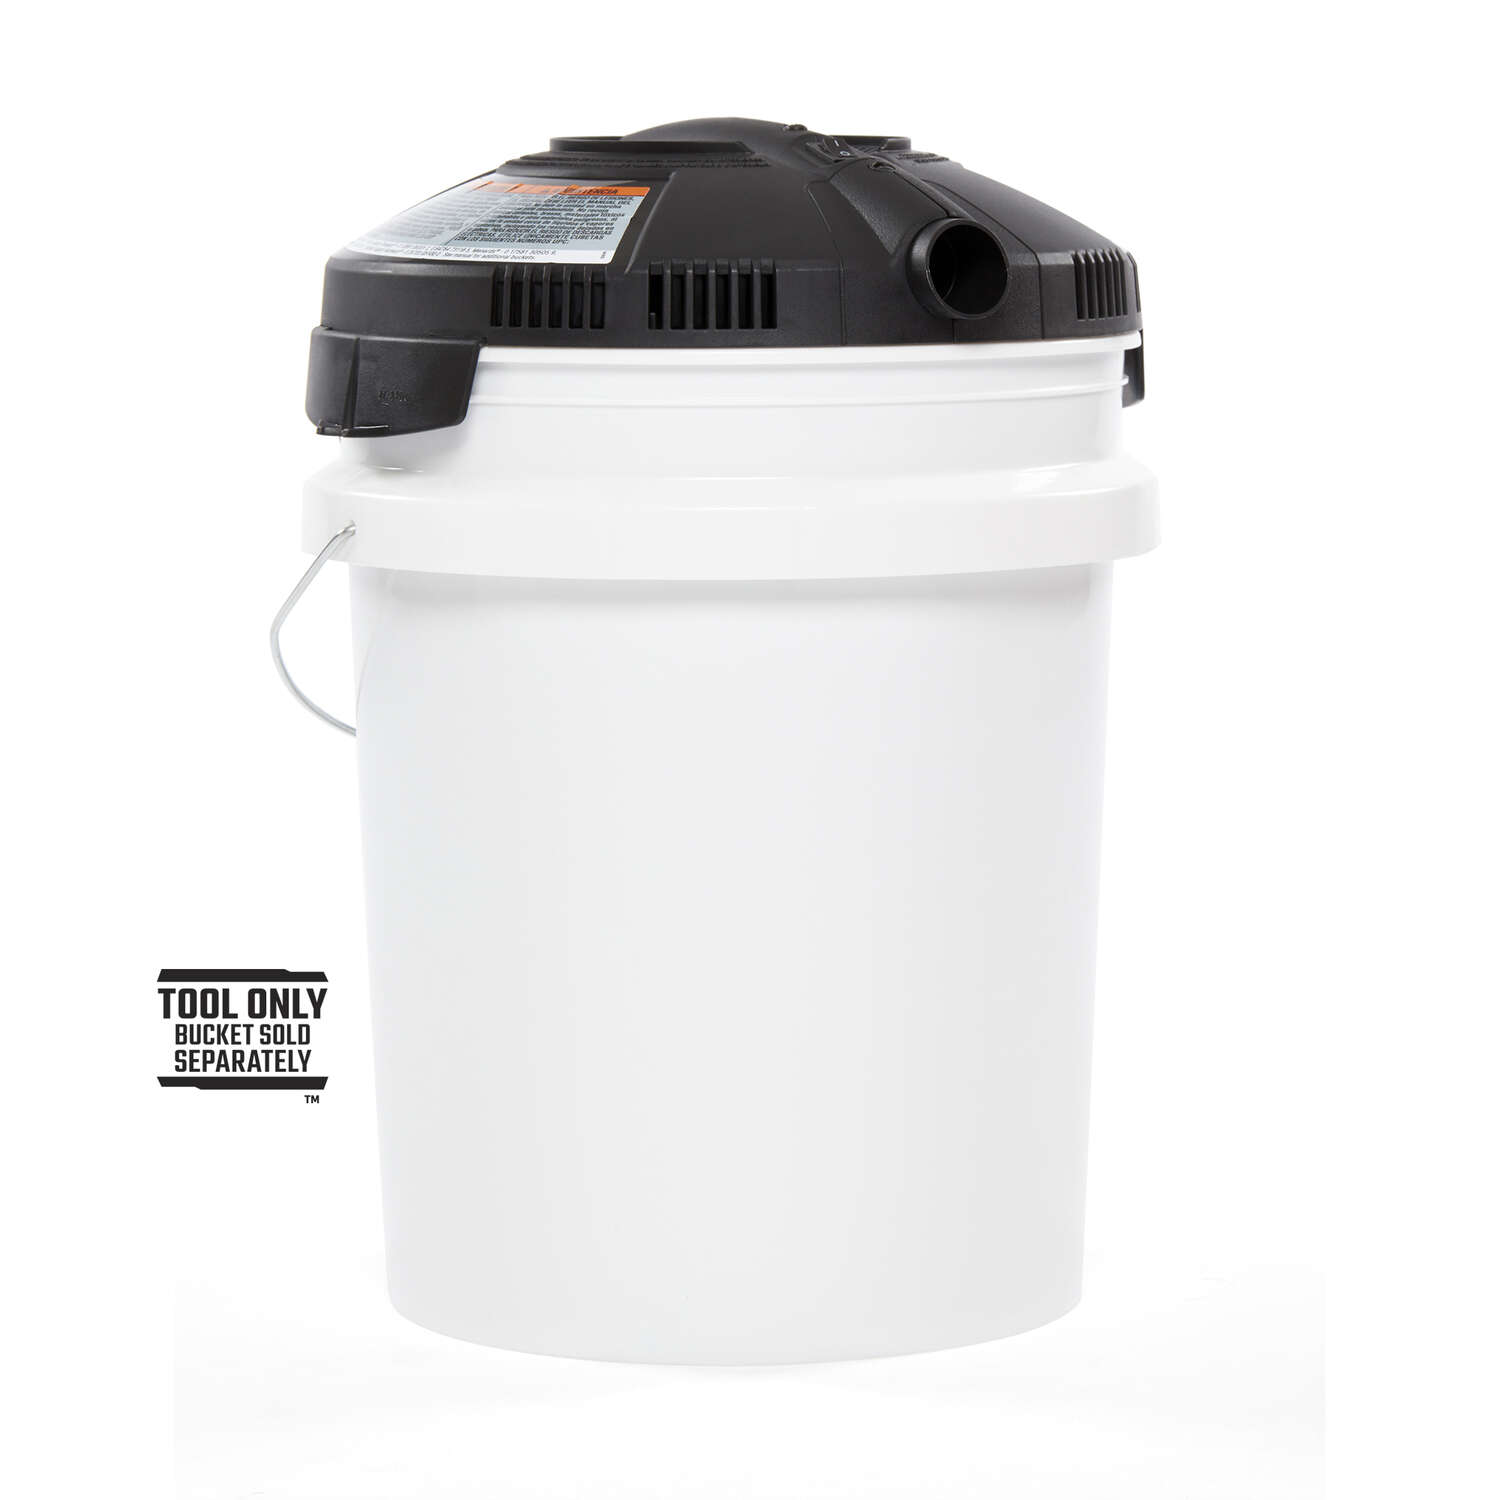 Craftsman  12.5  L x 12.5 in. W x 12.5 in. Dia. Wet/Dry Vac Powerhead  1 pc.